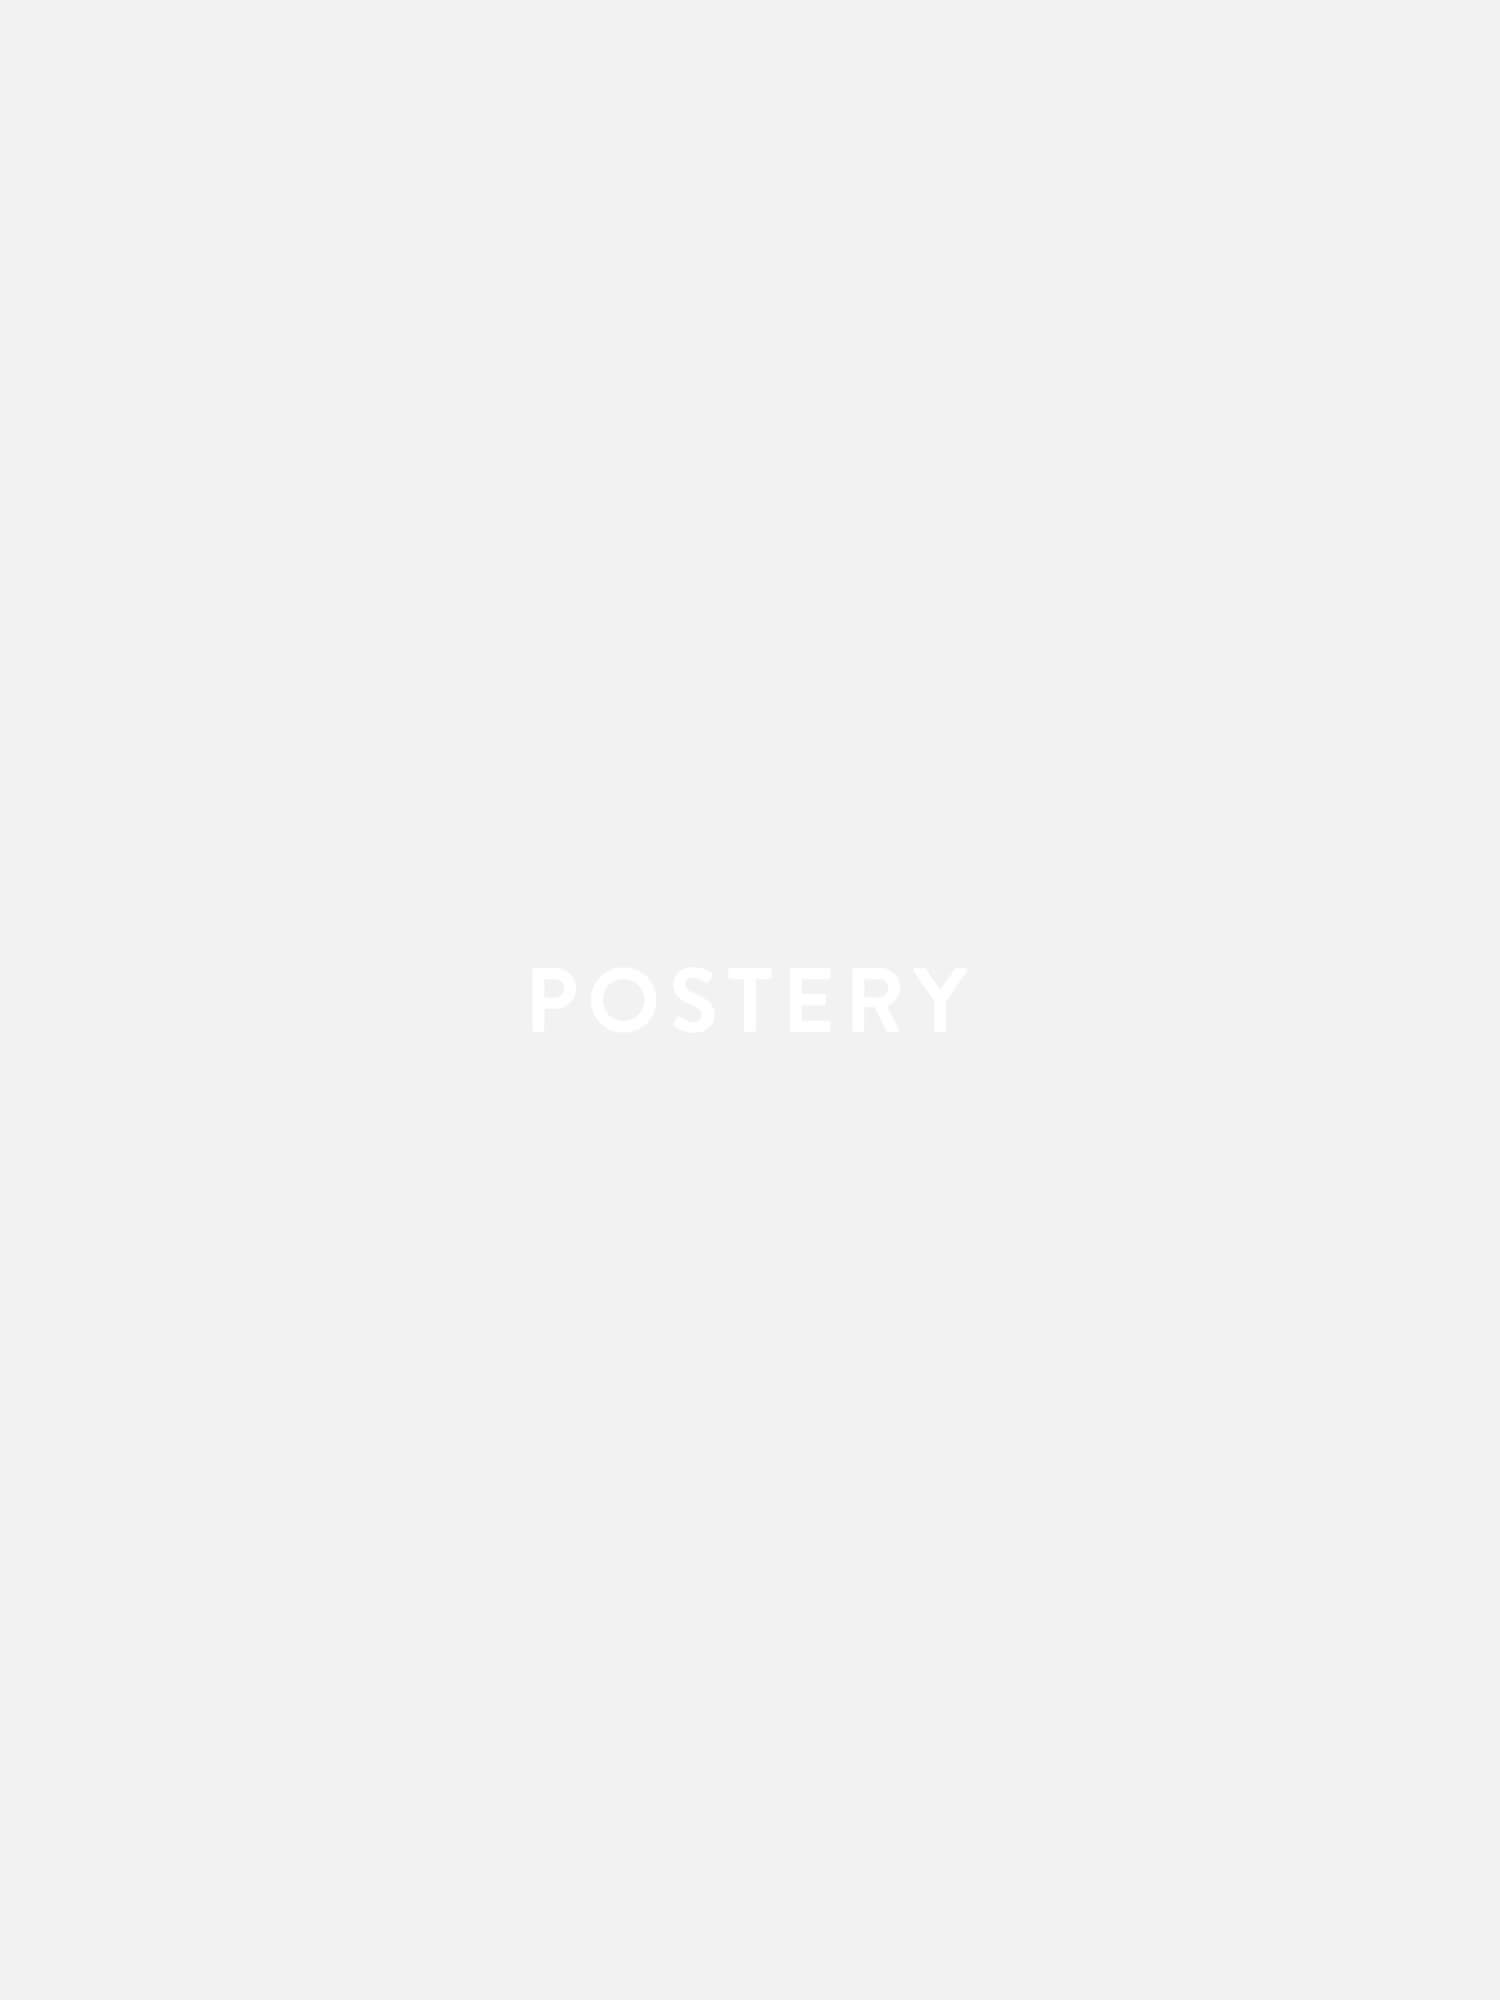 Green Palm Leaf no.2 Poster